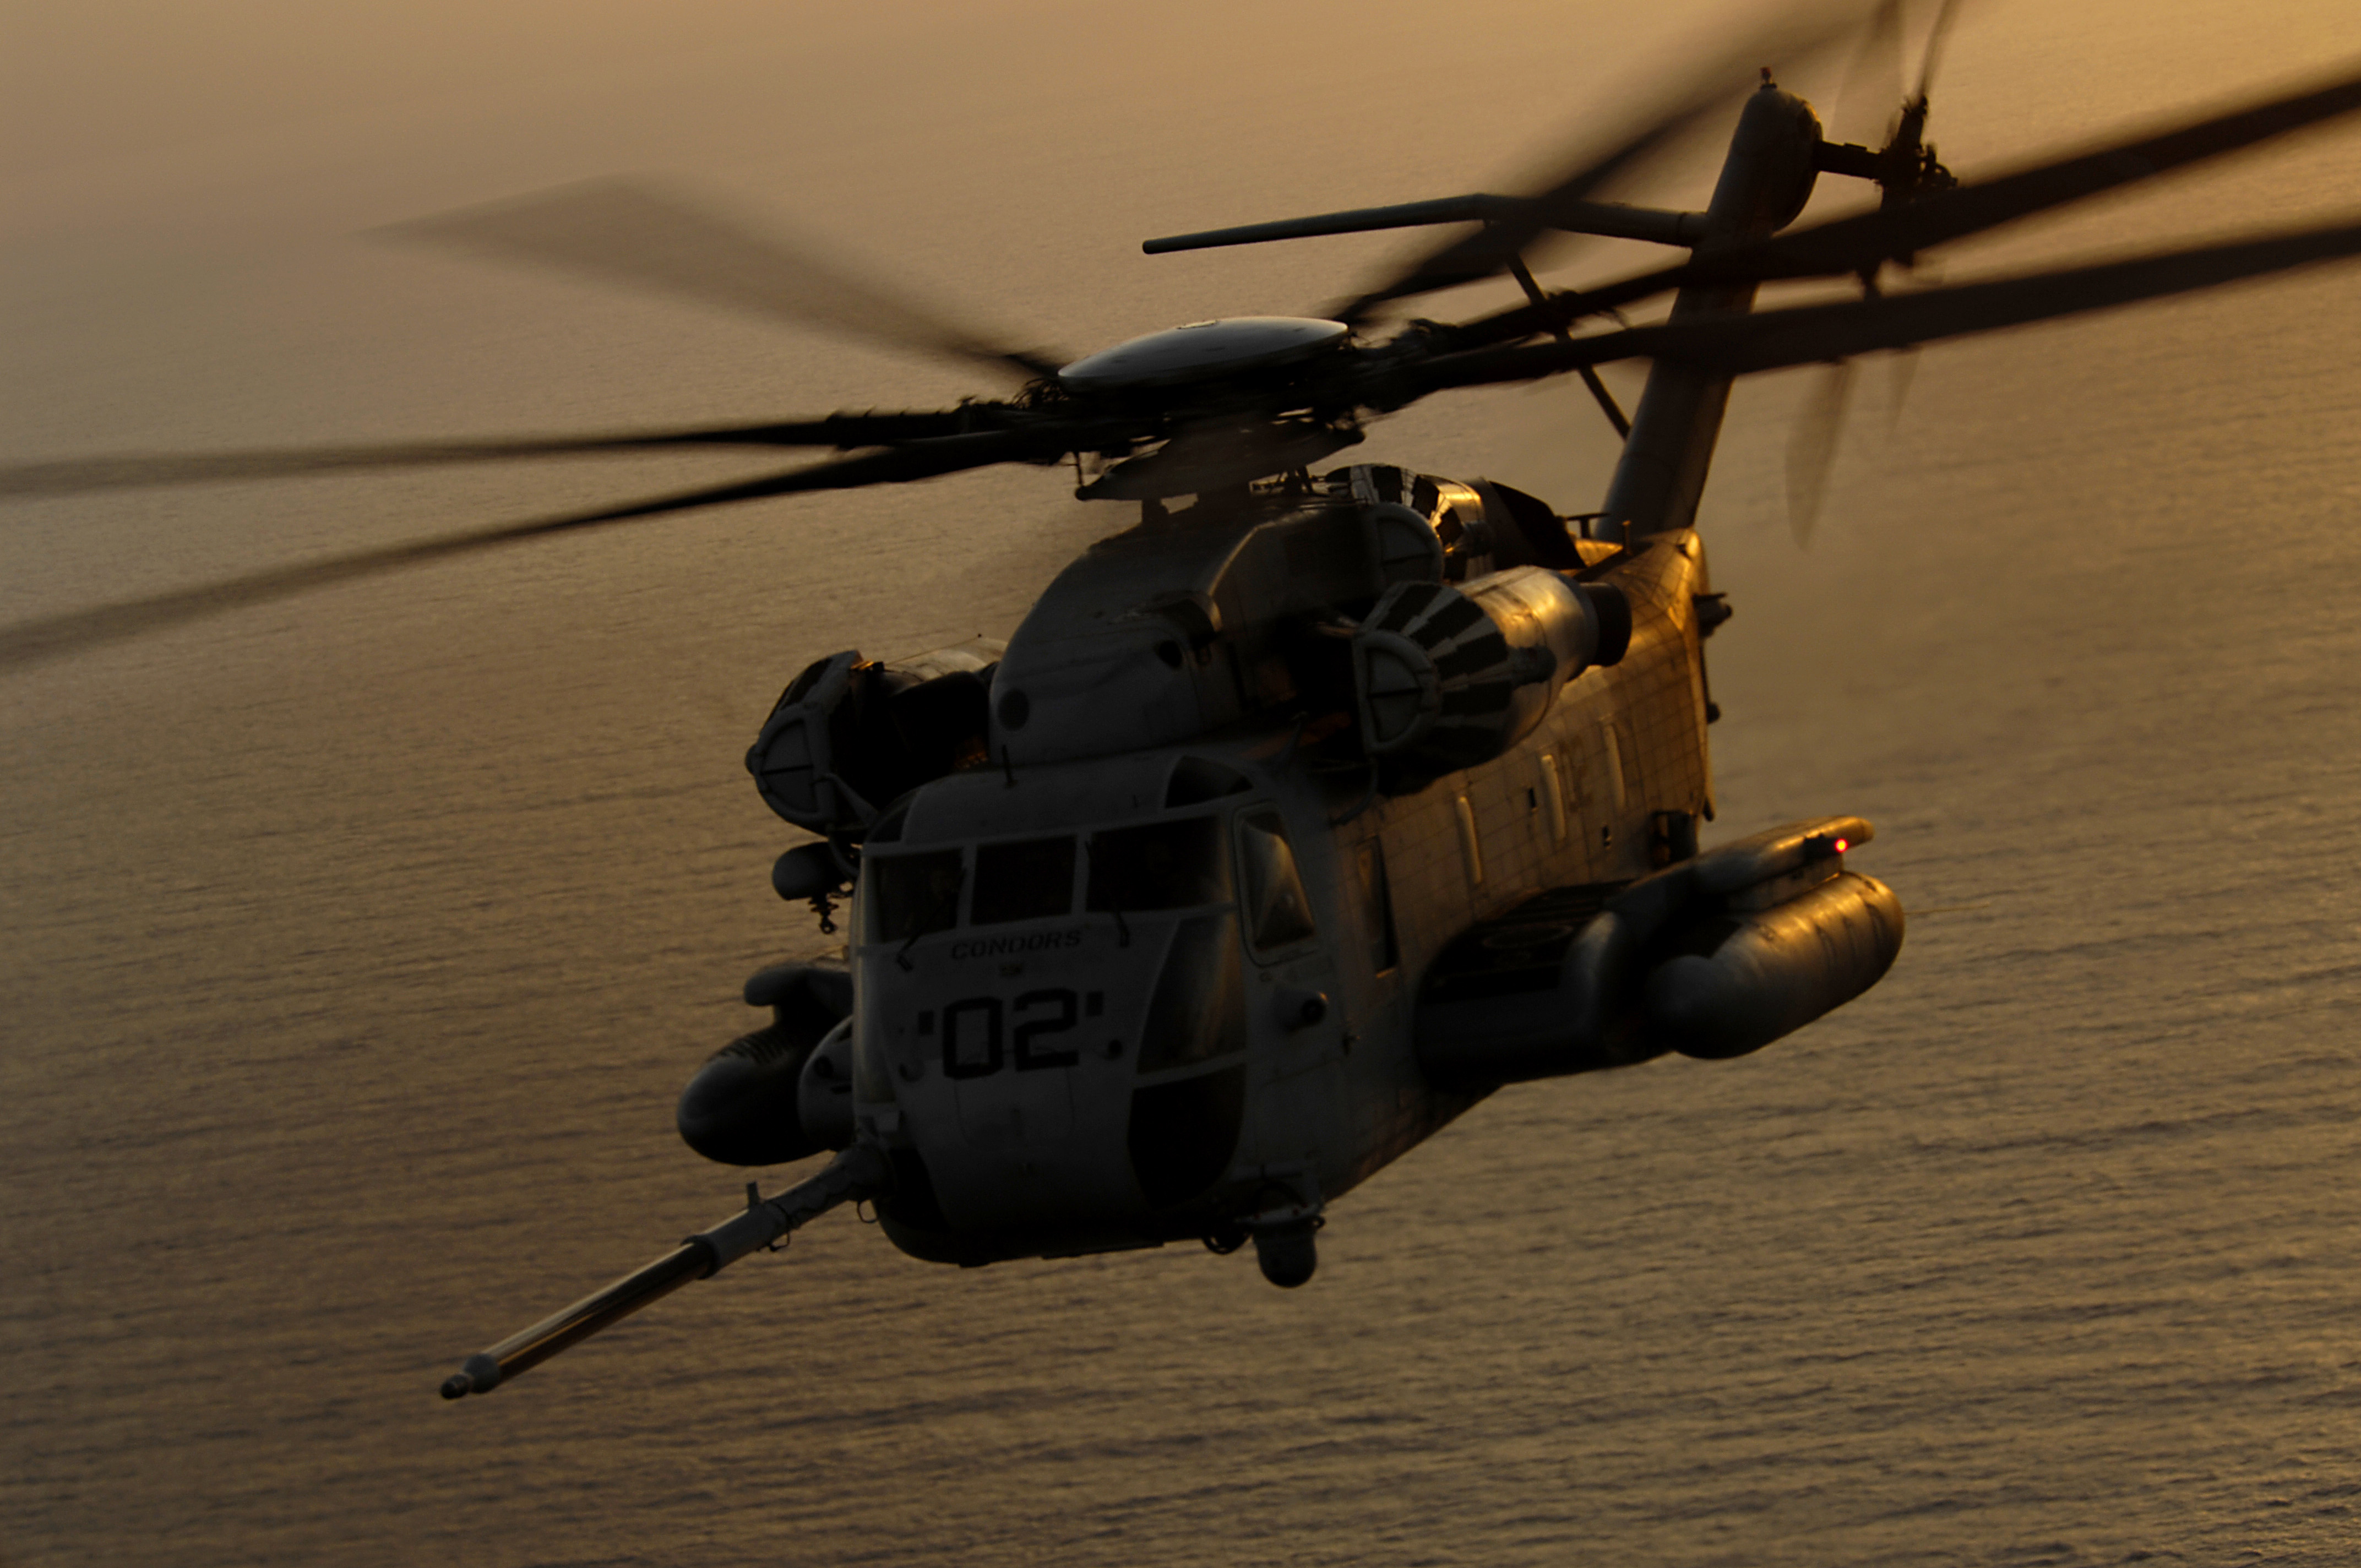 war helicopter pictures with File Us Navy 080119 F 1644l 164   A Ch 53 Sea Stallion  Assigned To Marine Heavy Helicopter Squadron 464 Prepares To Refuel While Deployed As Part Of  Bined Joint Task Force   Horn Of Africa on Italy Lazio Roma Anzio additionally Bsf92 25 besides Bell Helicopter Receives Contract To further Emirati Embroidery Show Is A Stitch In Time 1 besides Lee Min Ho Pictures.